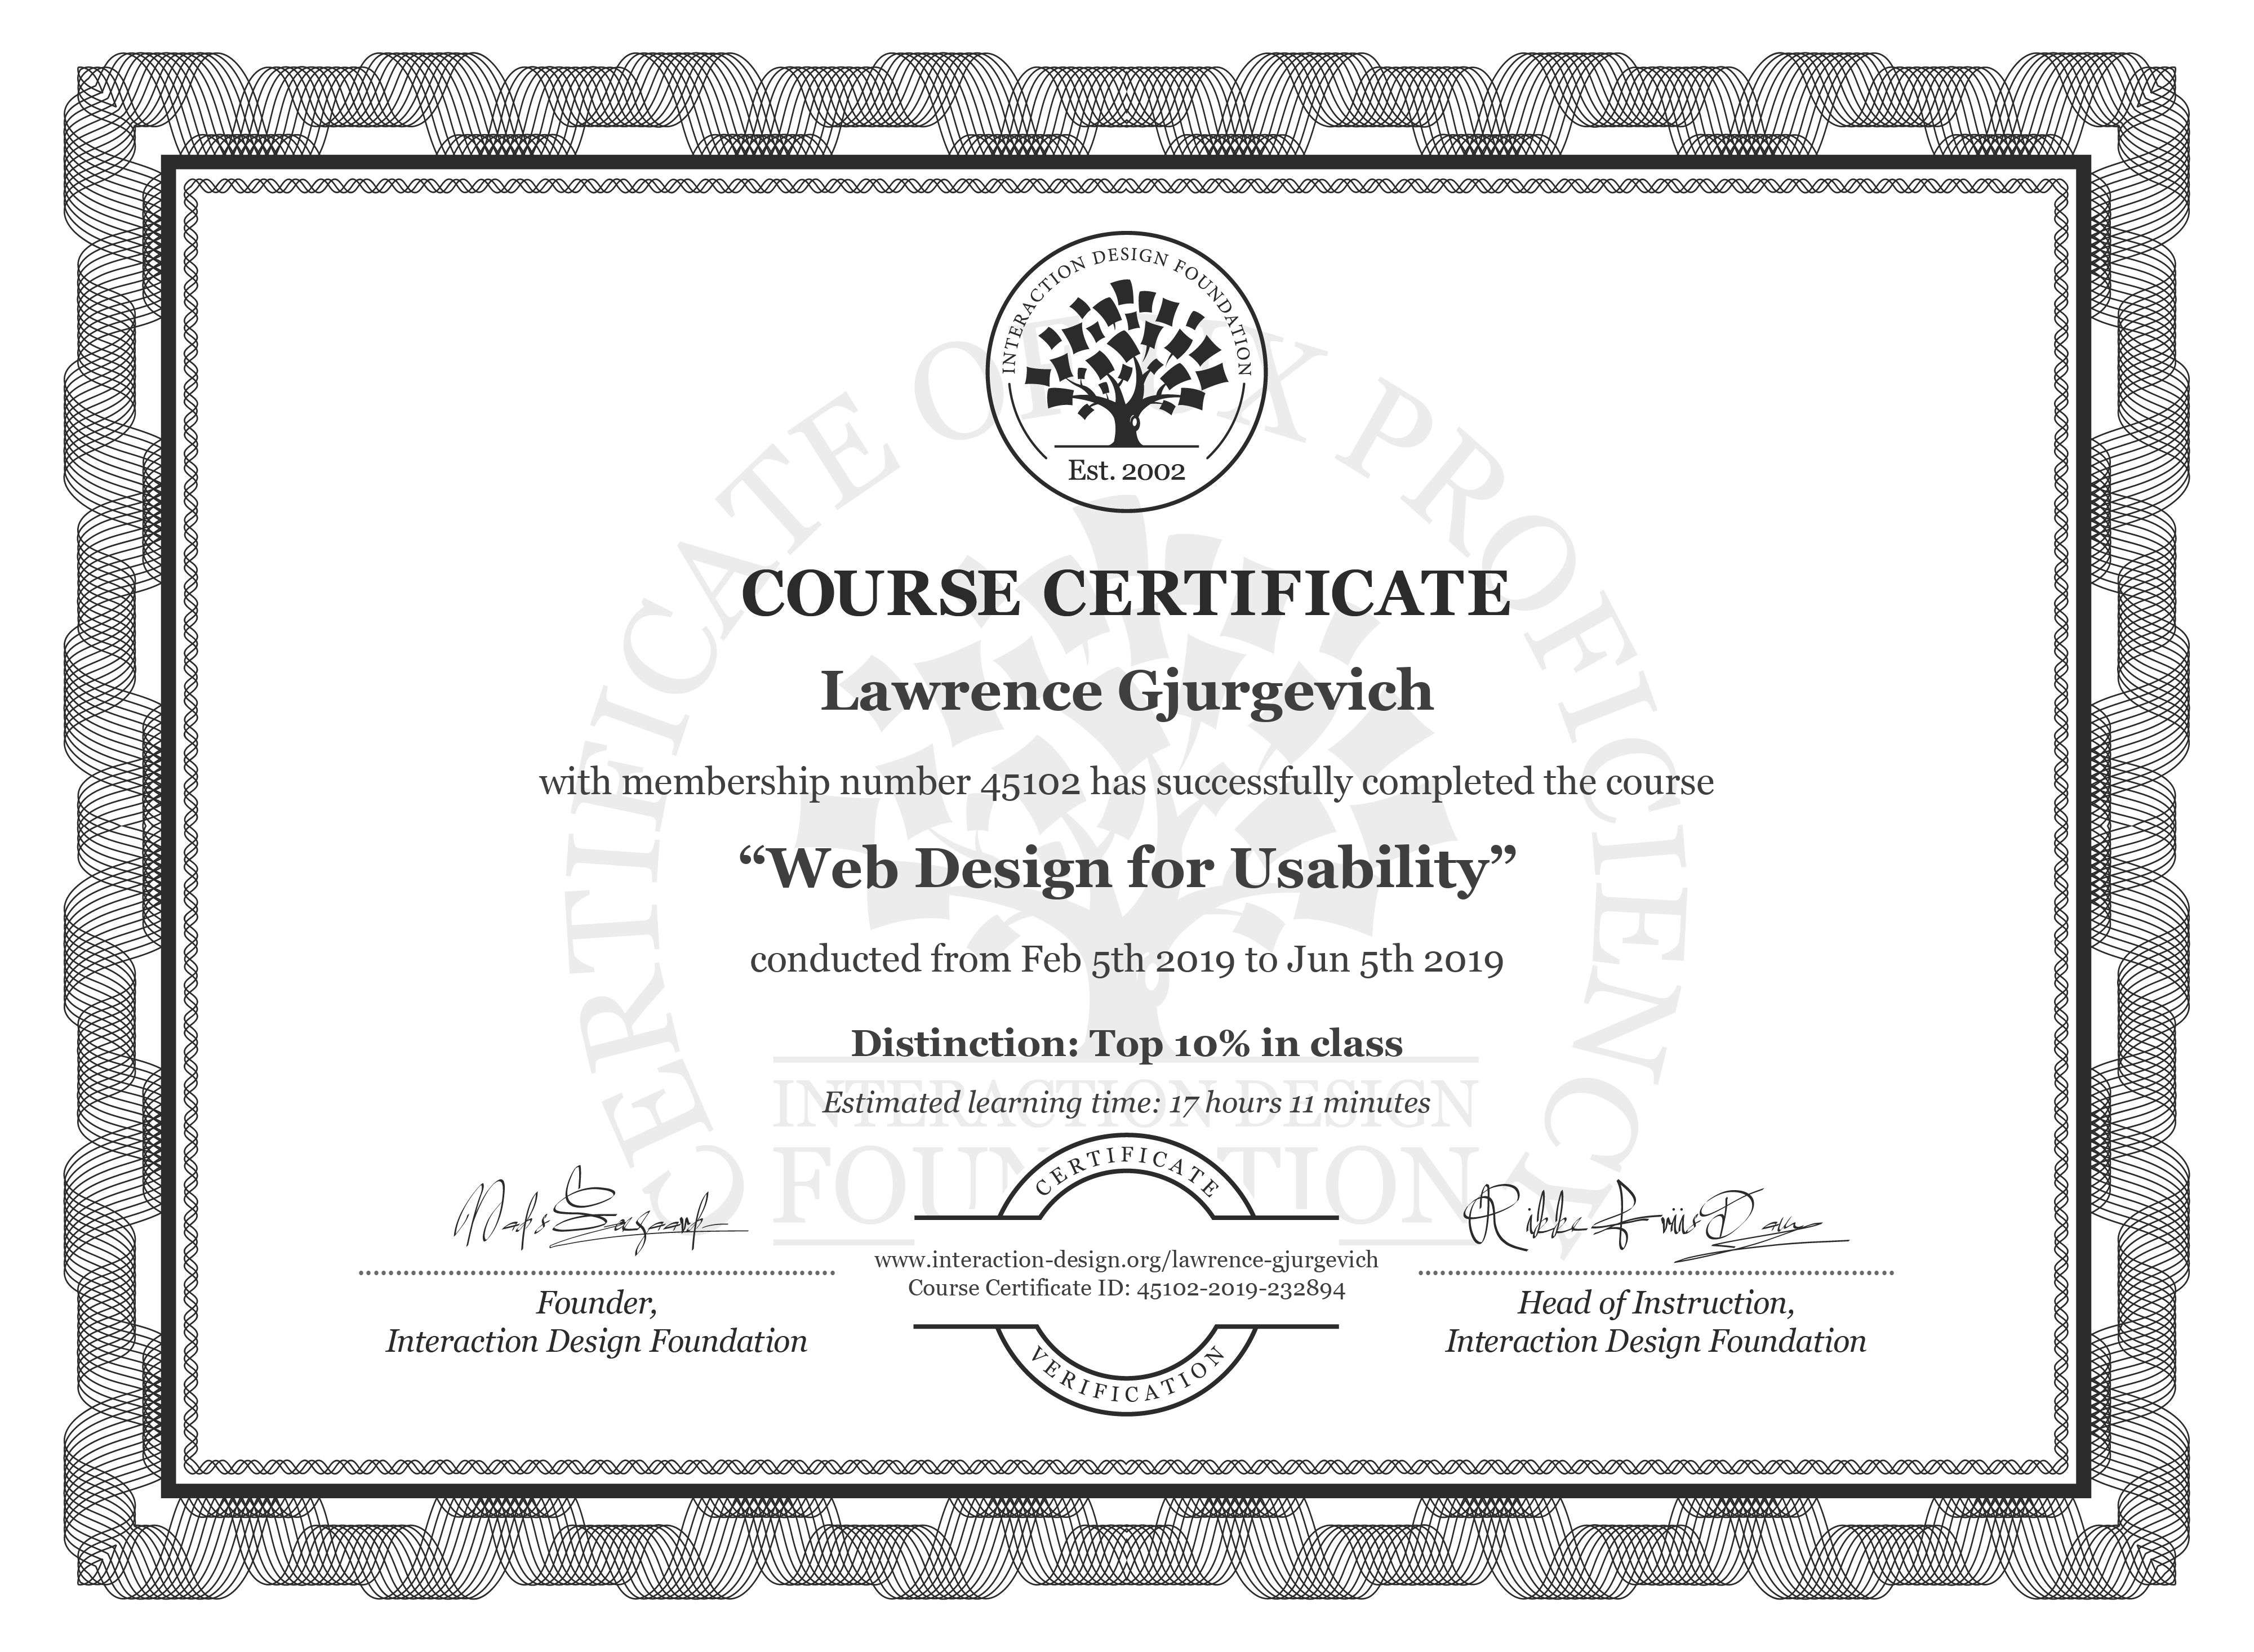 Lawrence Gjurgevich: Course Certificate - Web Design for Usability